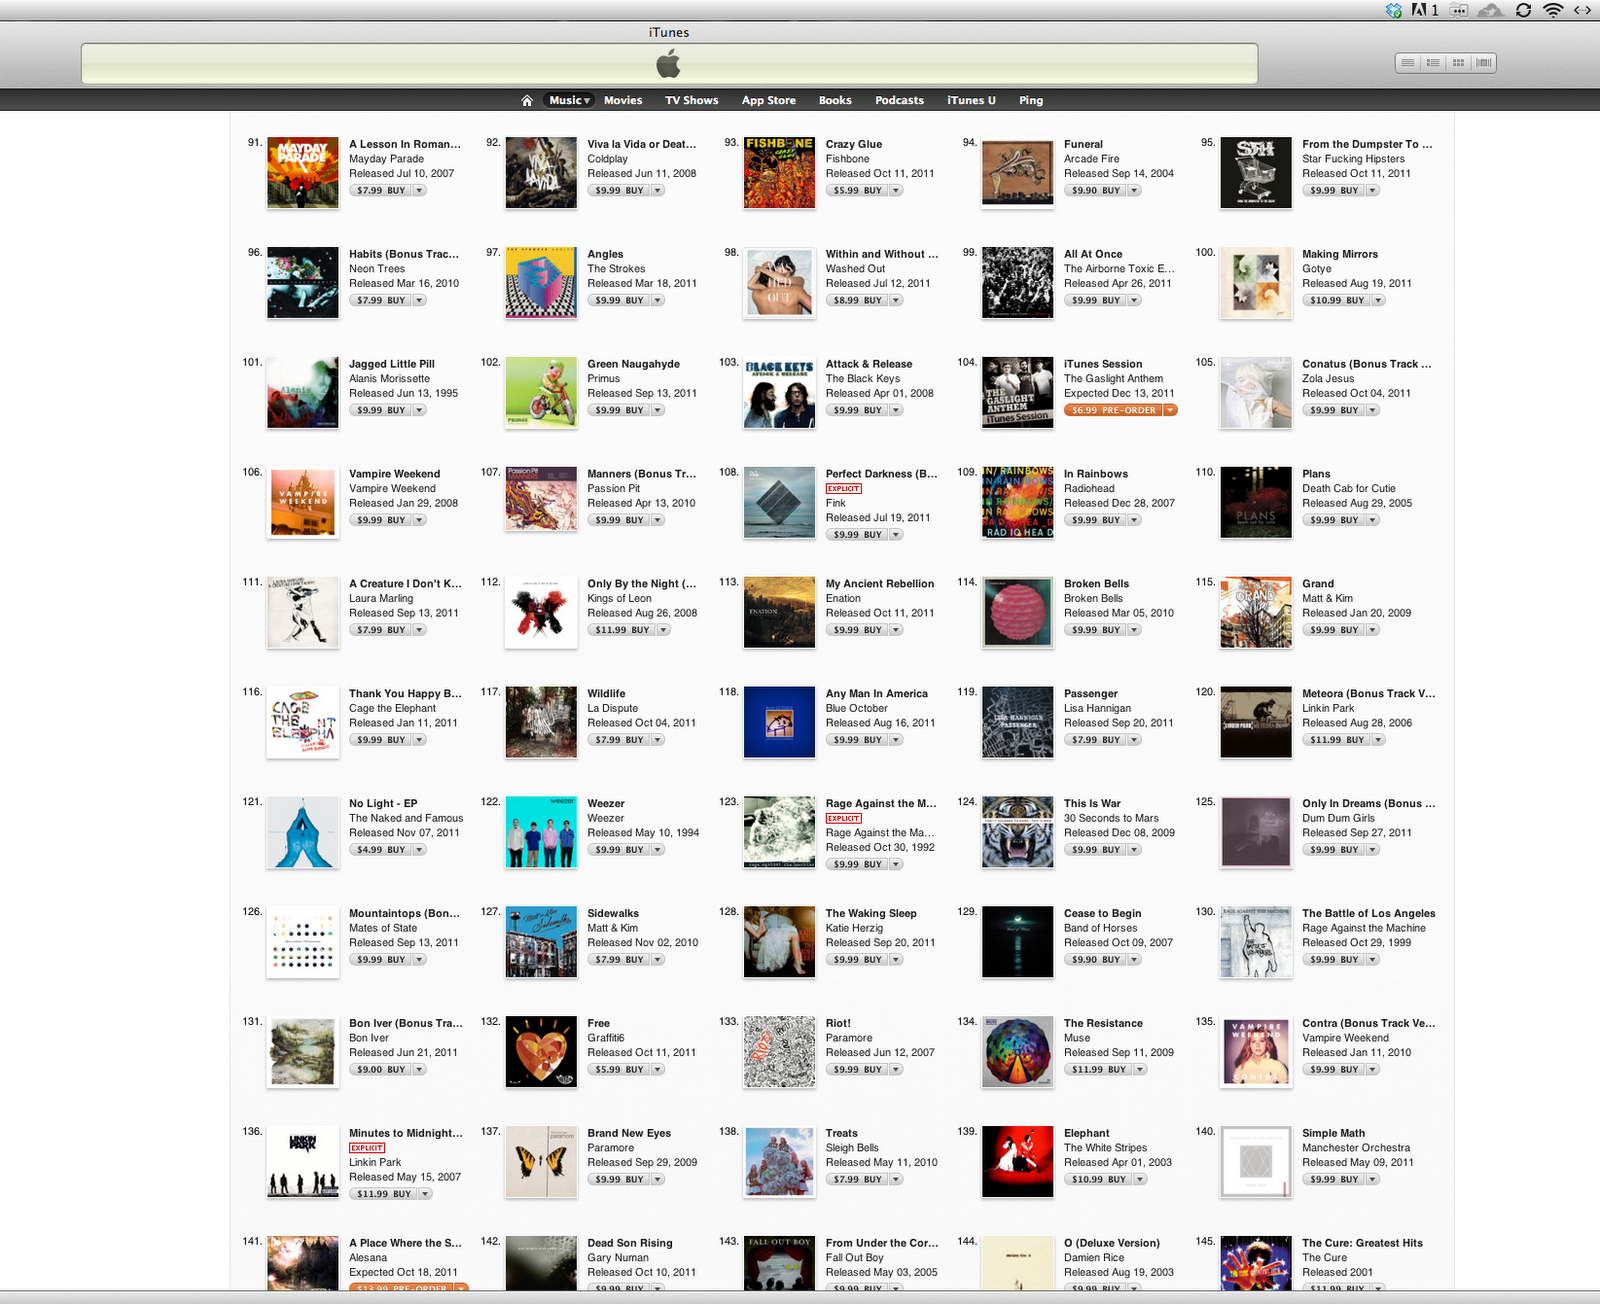 Itunes browse the top album downloads apple